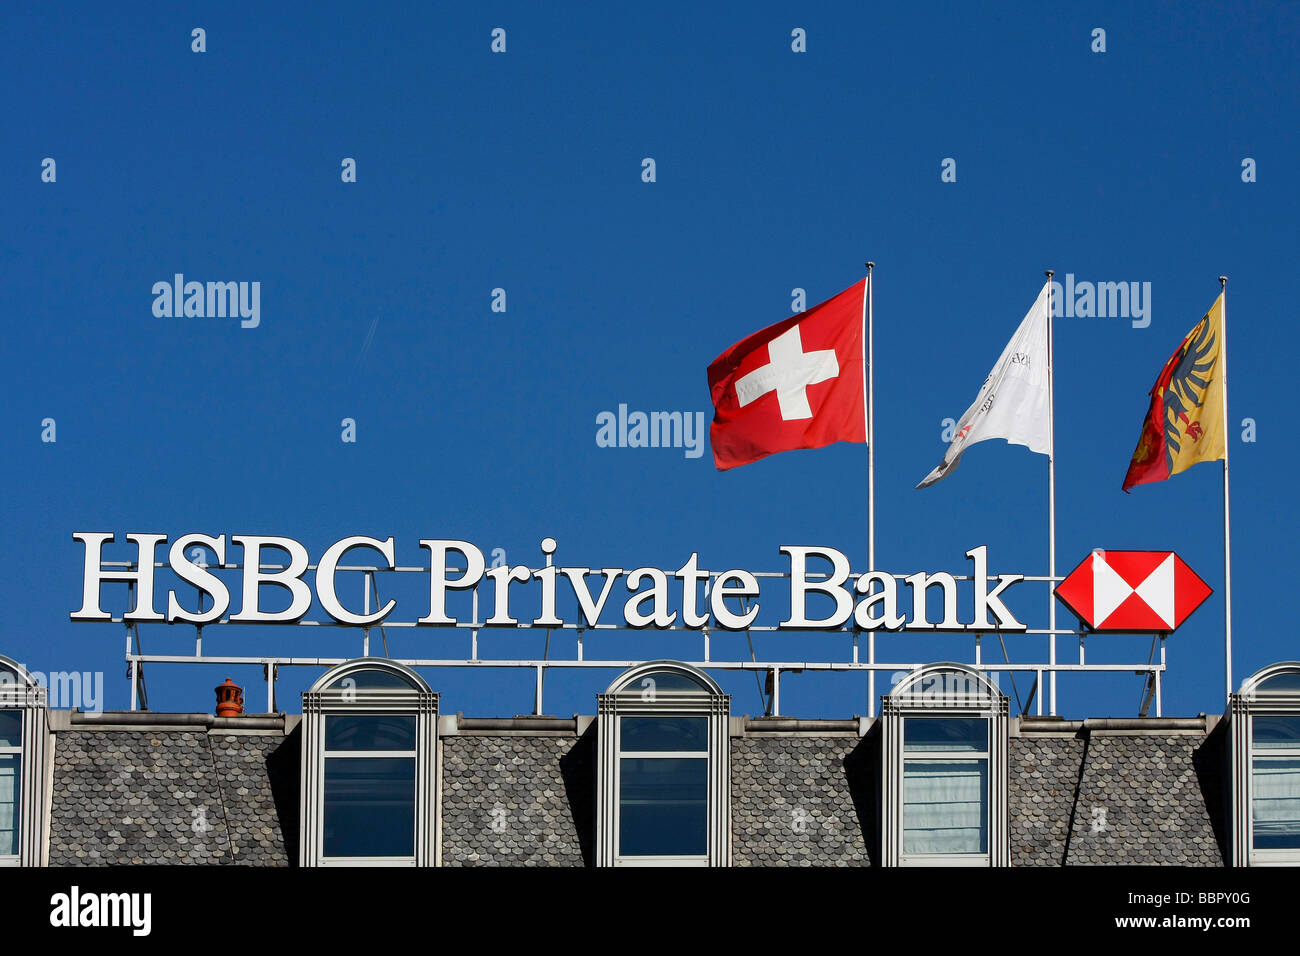 Hsbc private banking the private swiss banks in geneva stock hsbc private banking the private swiss banks in geneva switzerland buycottarizona Image collections